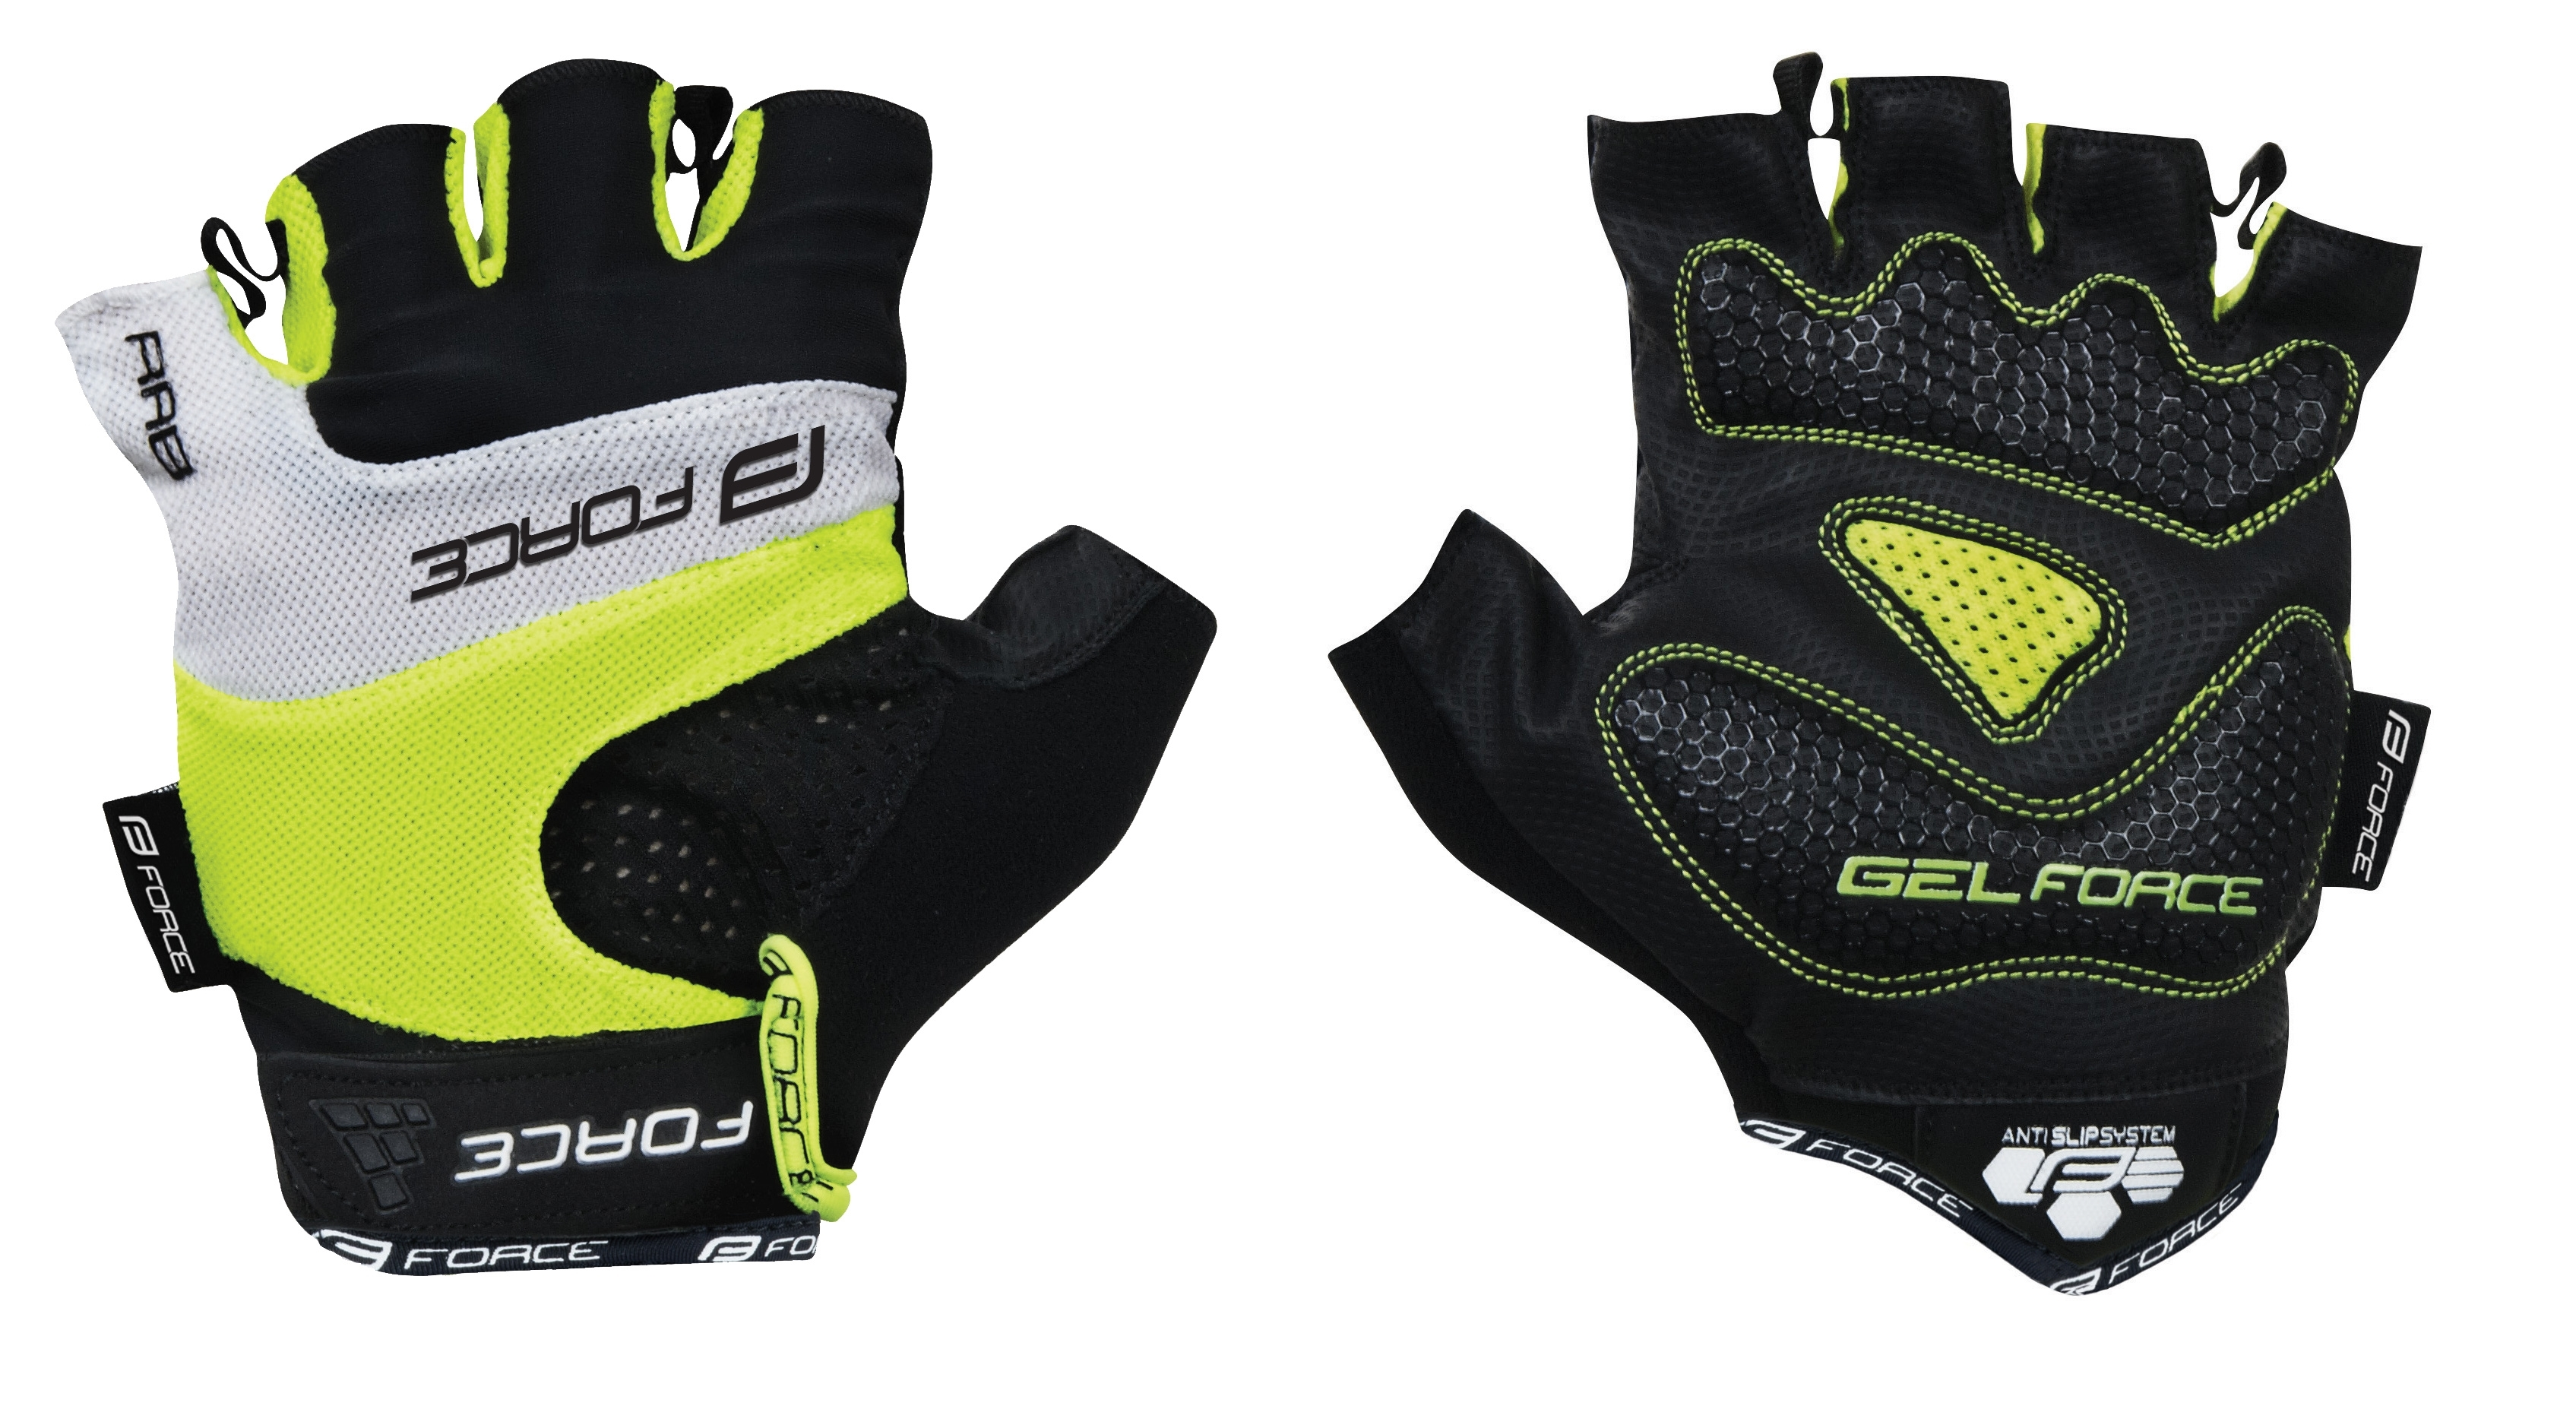 rukavice FORCE RAB gel, fluo XL